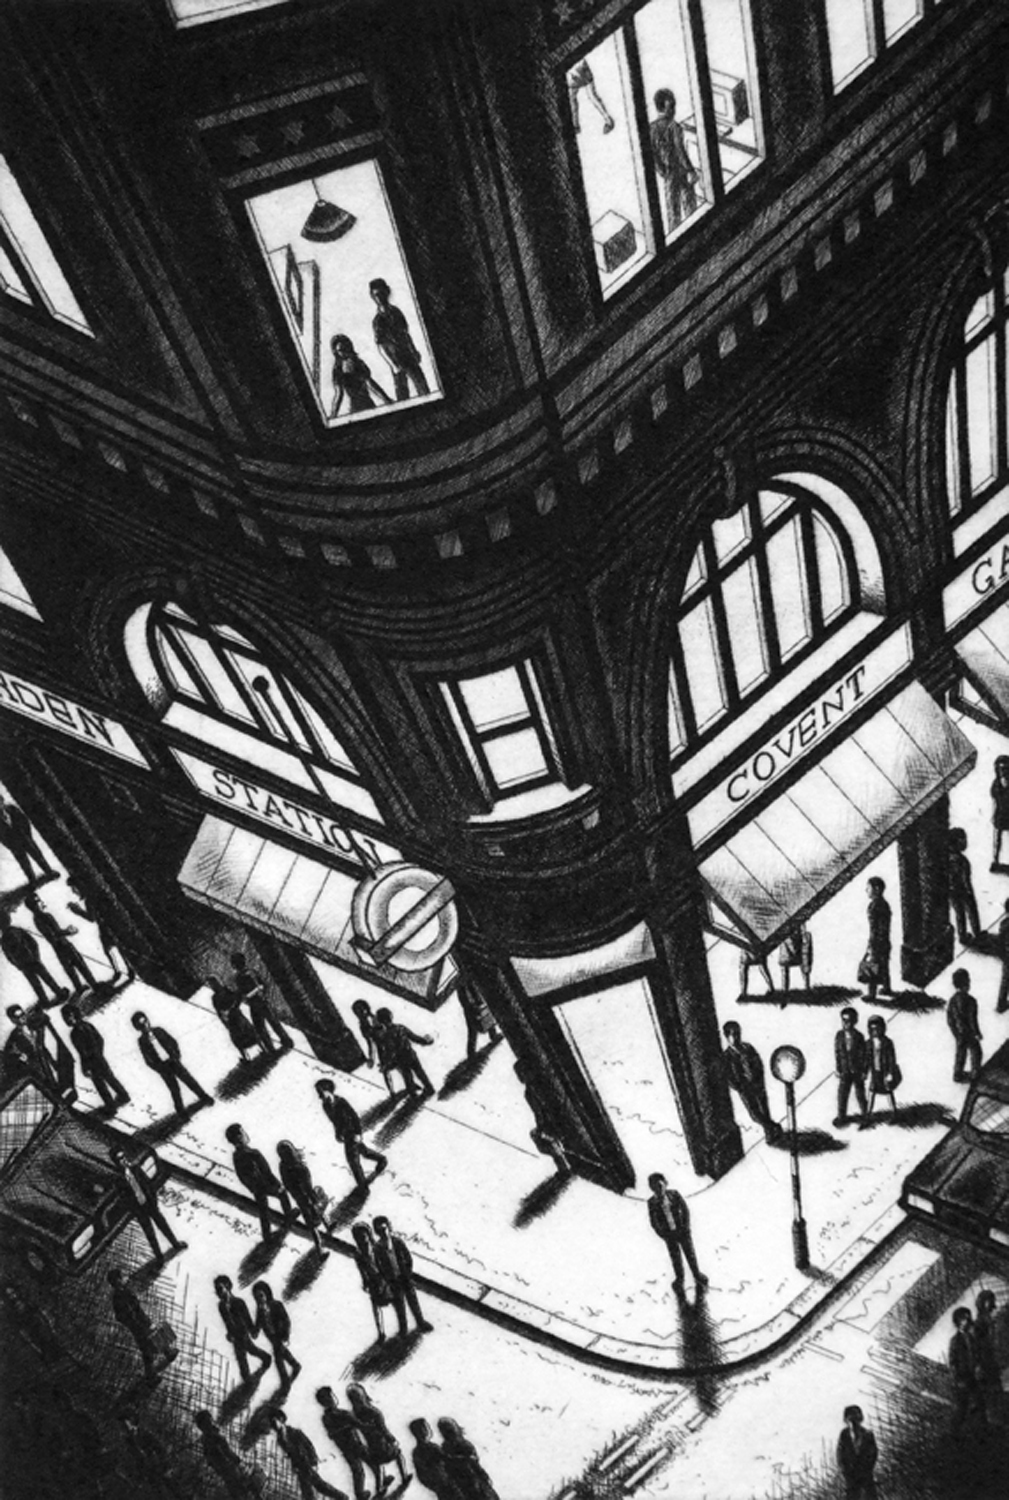 Night Time (Covent Garden Tube Station, London)   etching   38 x 25 cm  £195 (unframed)